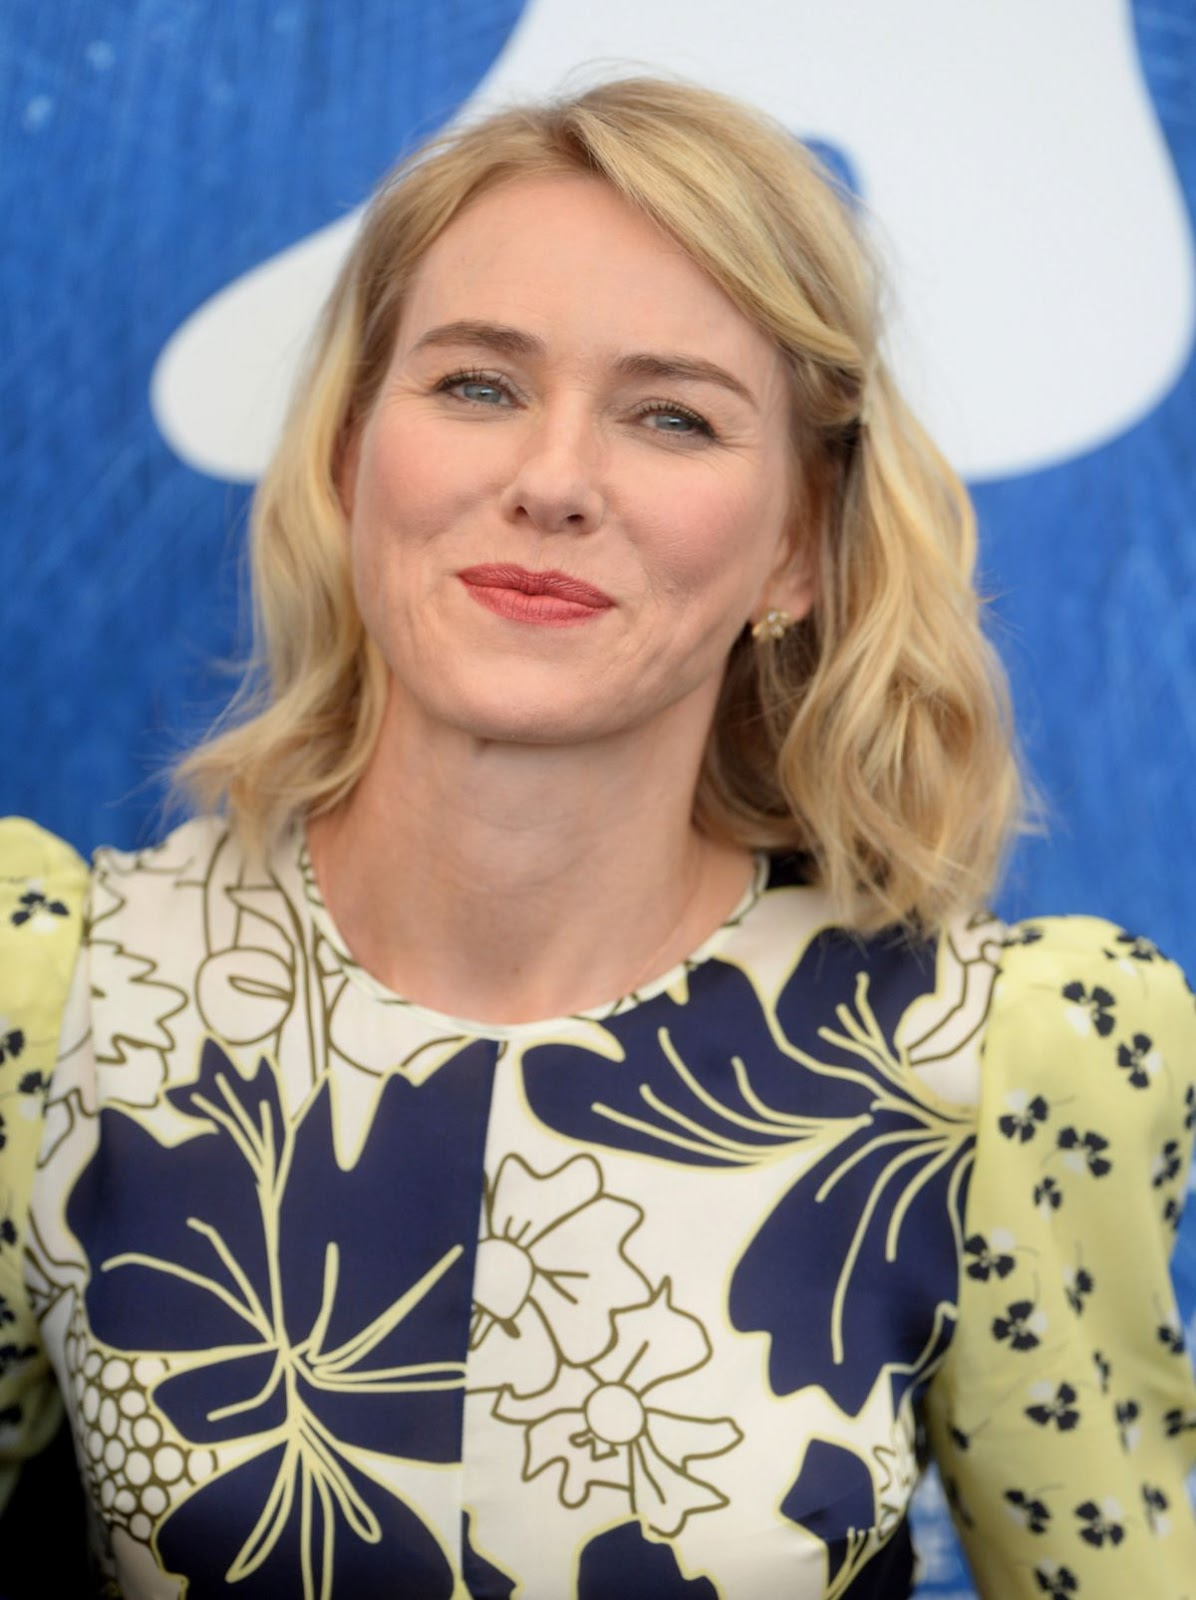 Full HQ Photos of 'The Bleeder' actress Naomi Watts at 'The Bleeder' Photocall at 2016 73rd Venice Film Festival